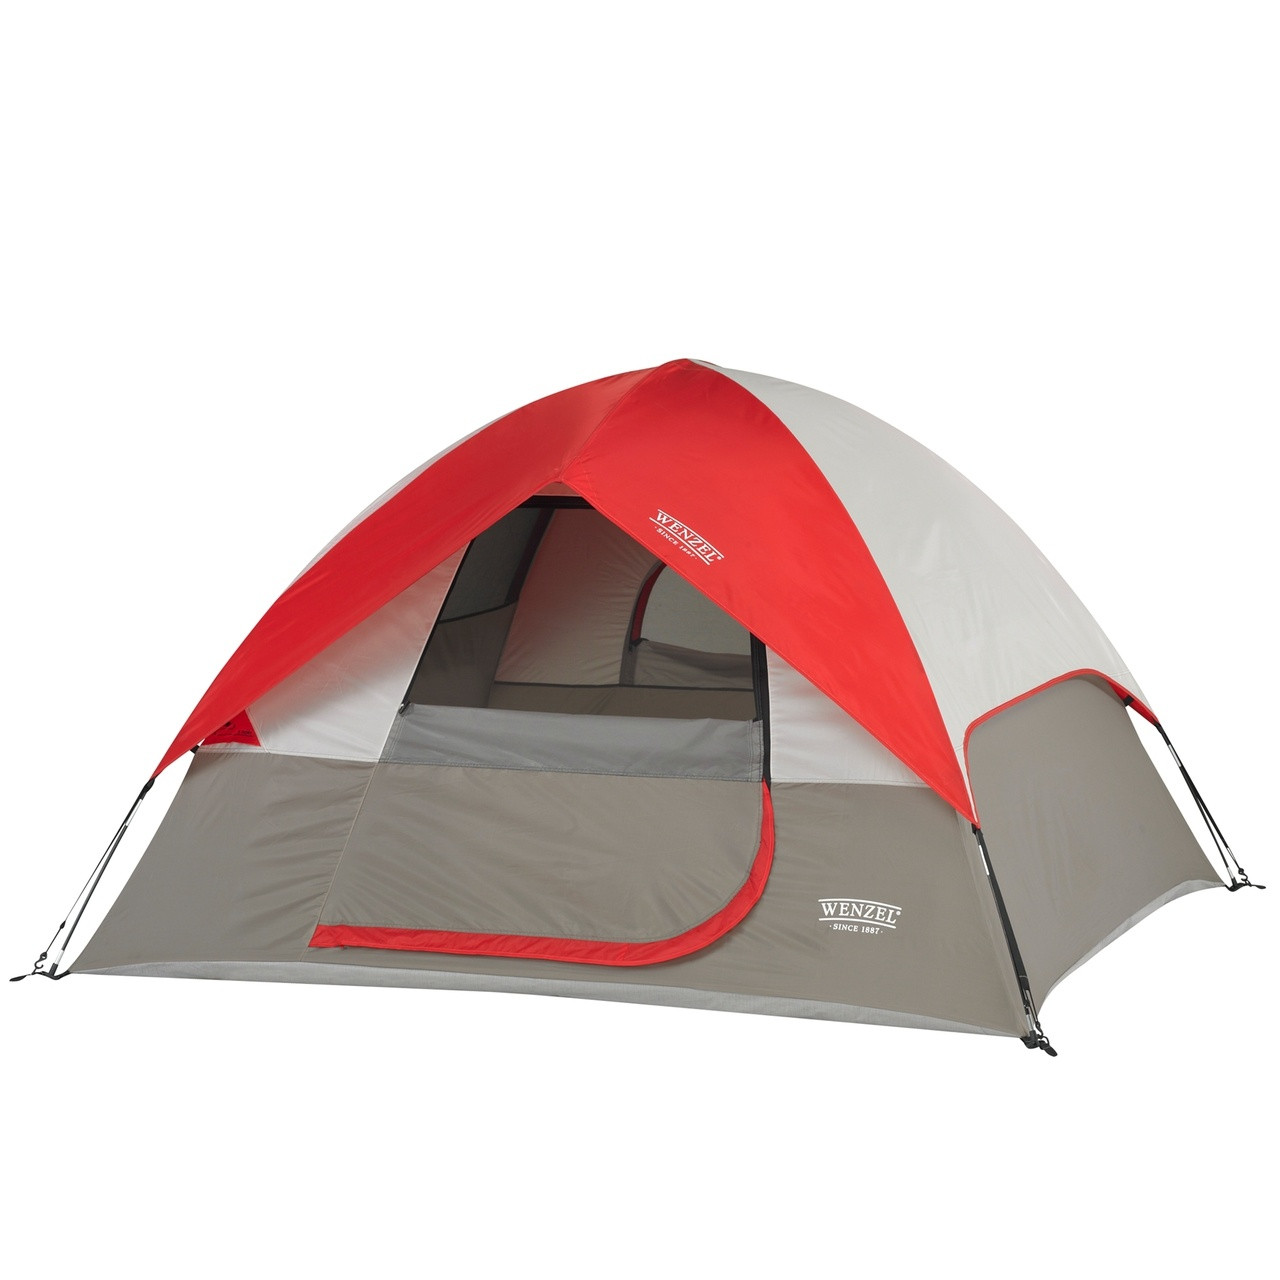 Wenzel Ridgeline 3 tent, gray and red with tan, setup with the rain fly on and the main screen window rolled open